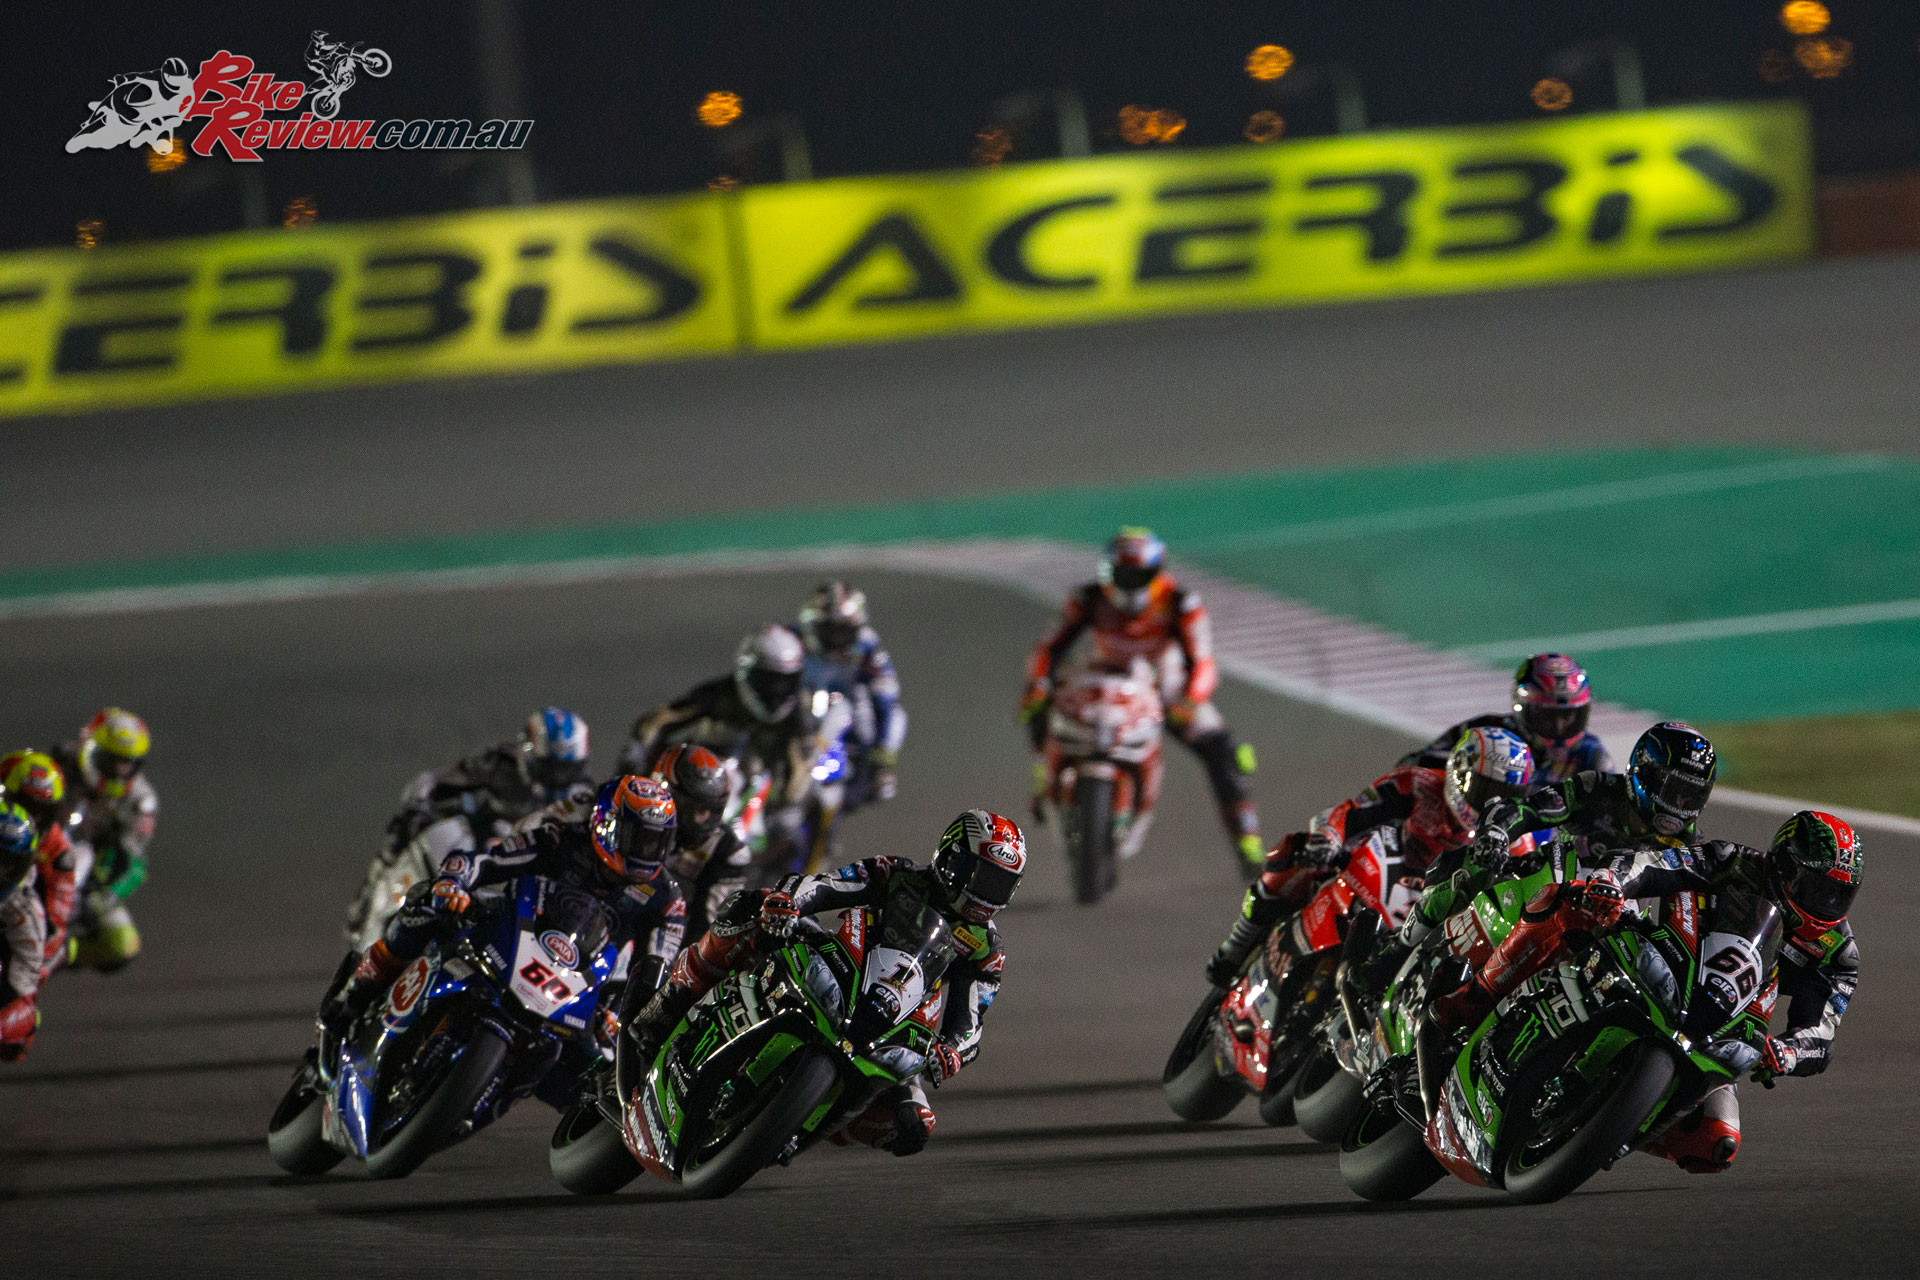 Sykes crashed out at Qatar, ending his hopes of second overall